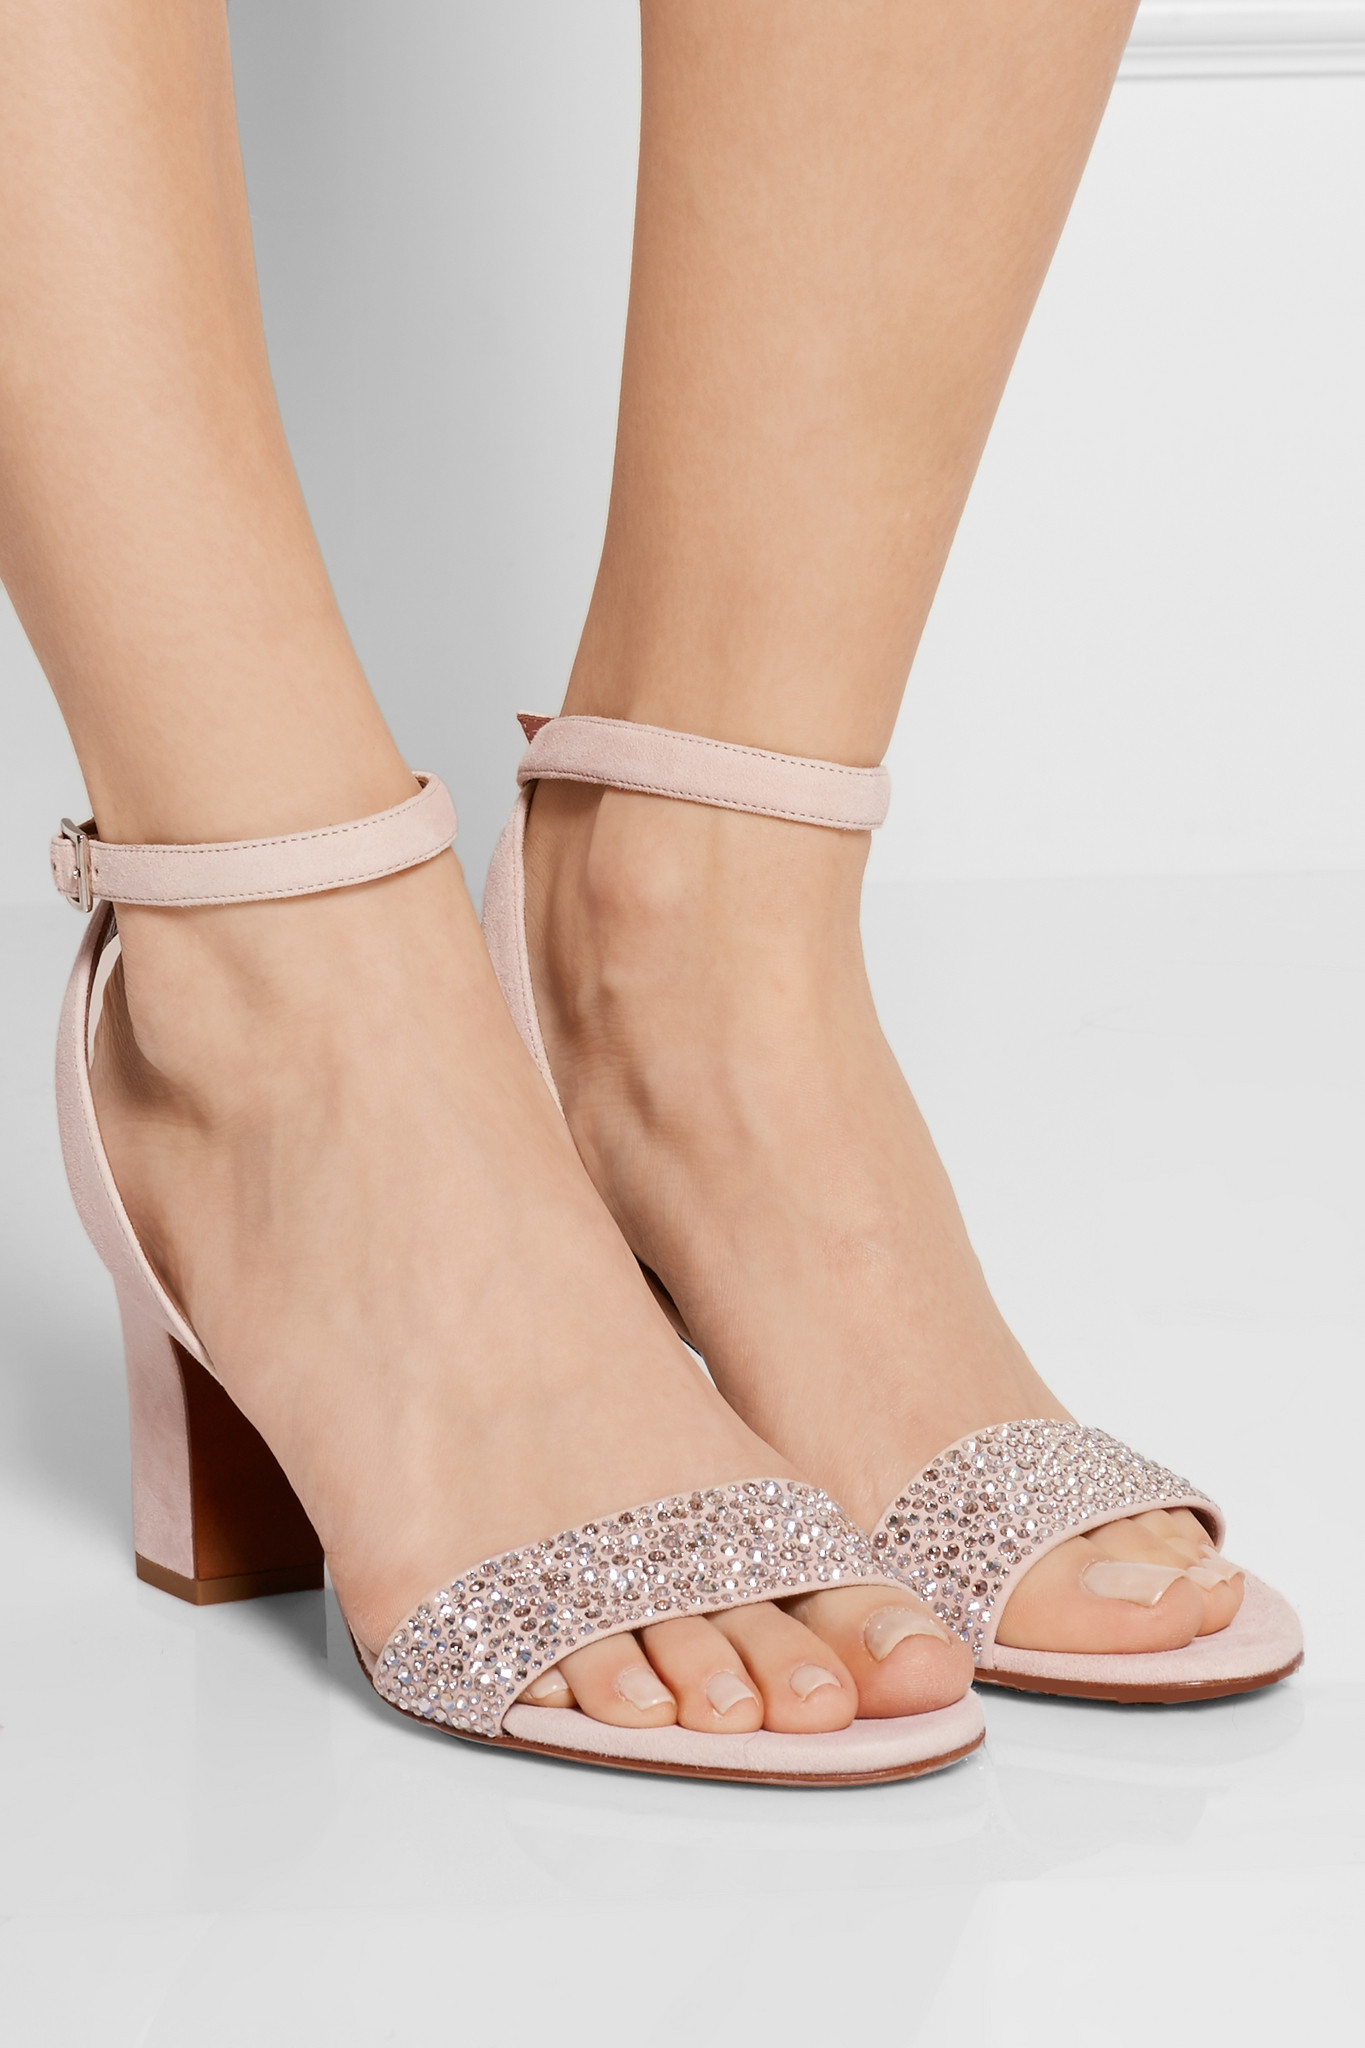 339544d78e1c Lyst - Tabitha Simmons Leticia Crystal-embellished Suede Sandals